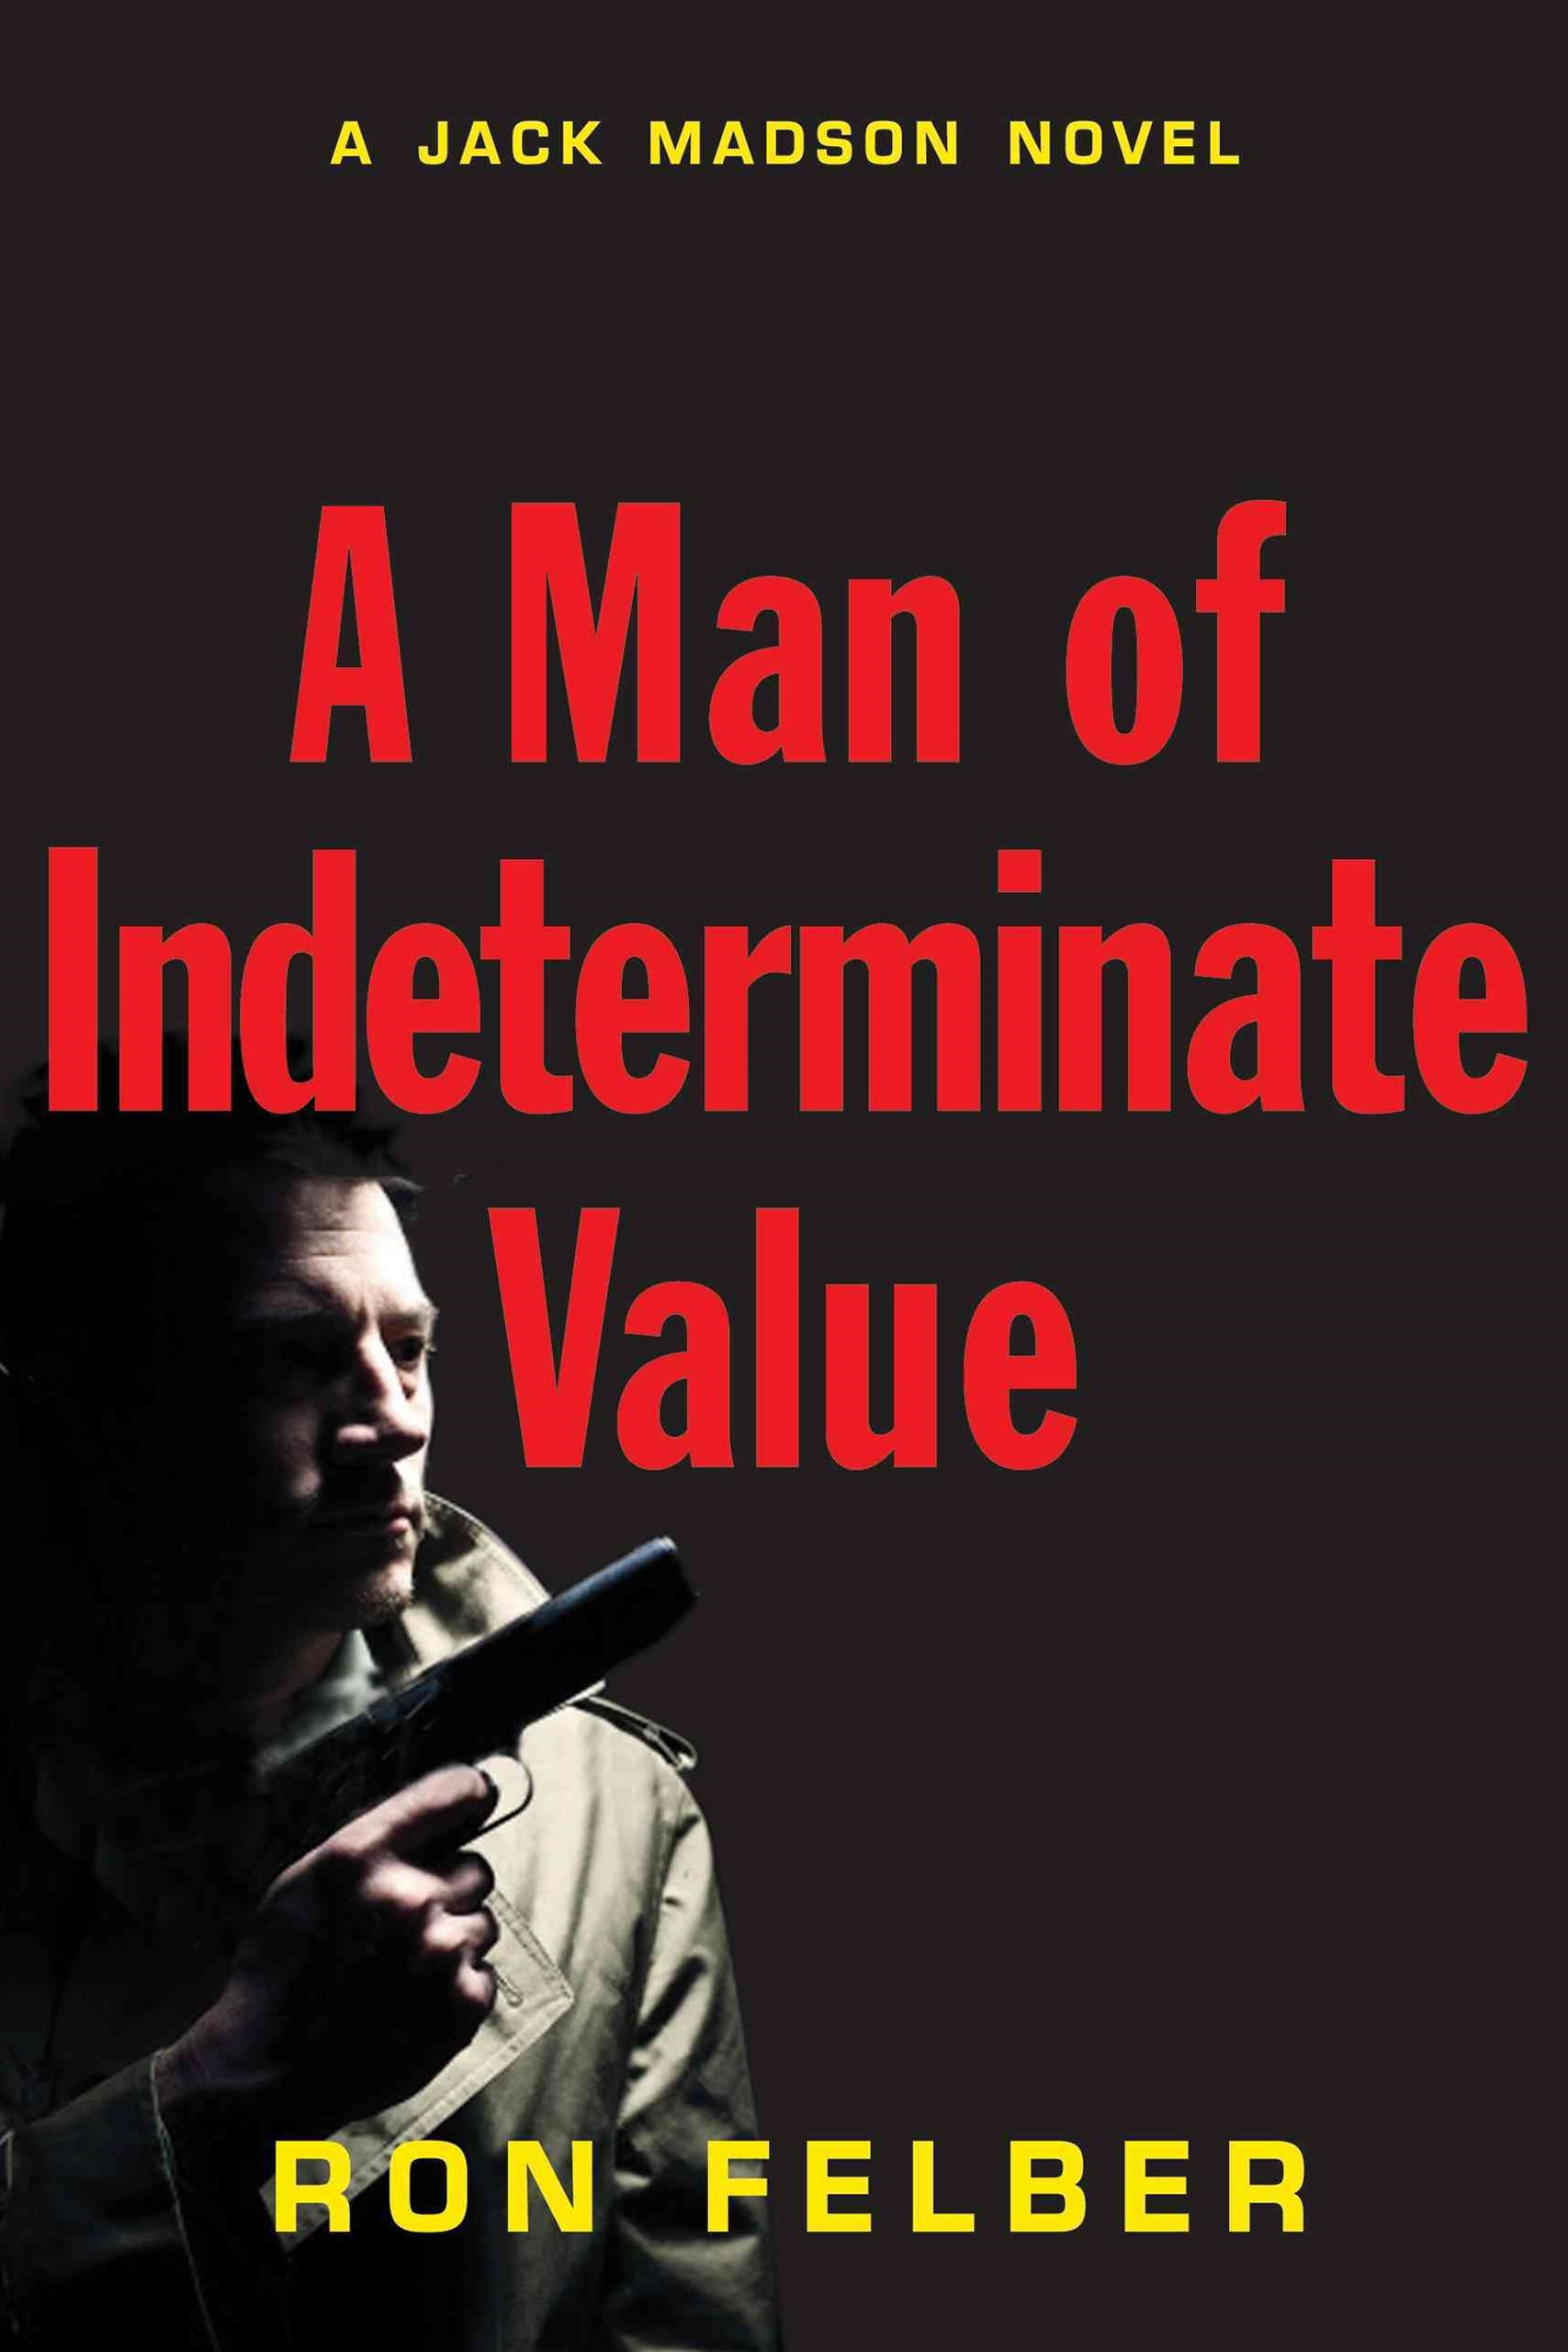 A Man of Indeterminate Value